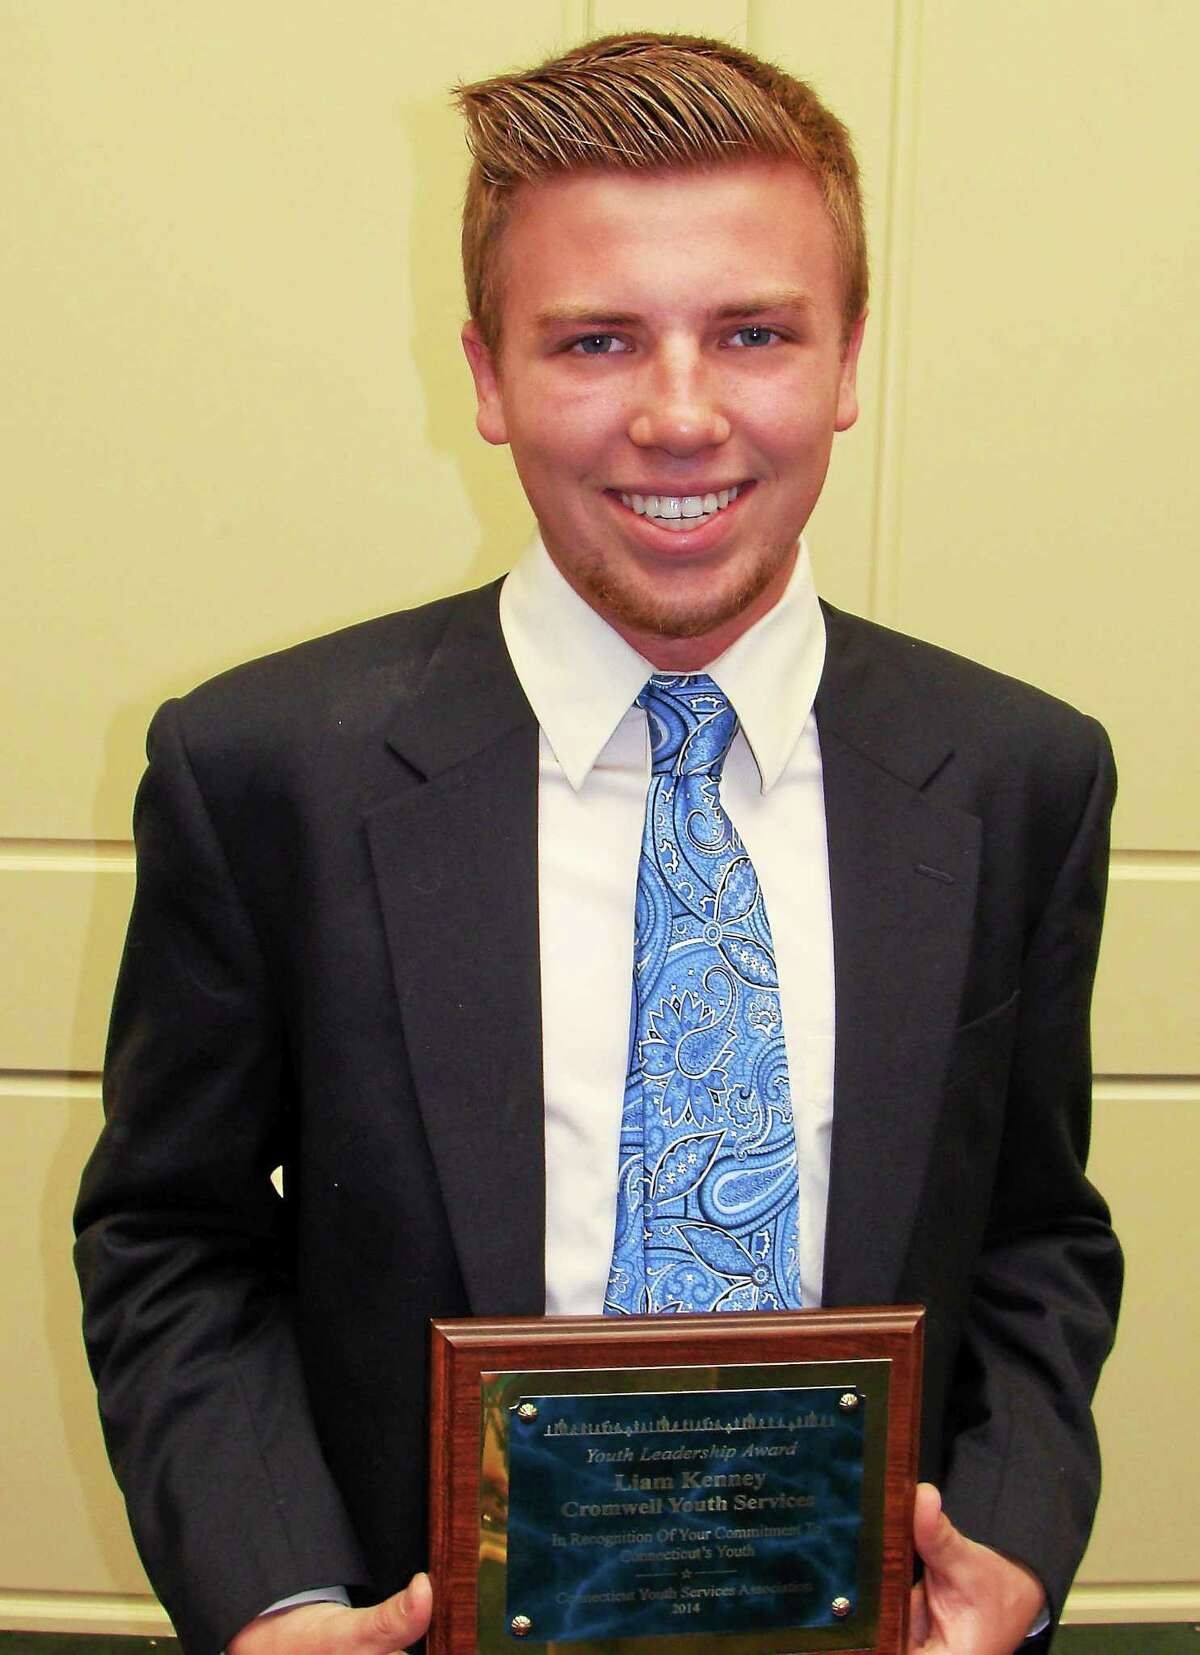 Liam Kenney of Cromwell received the 2014 Youth Leadership Award.